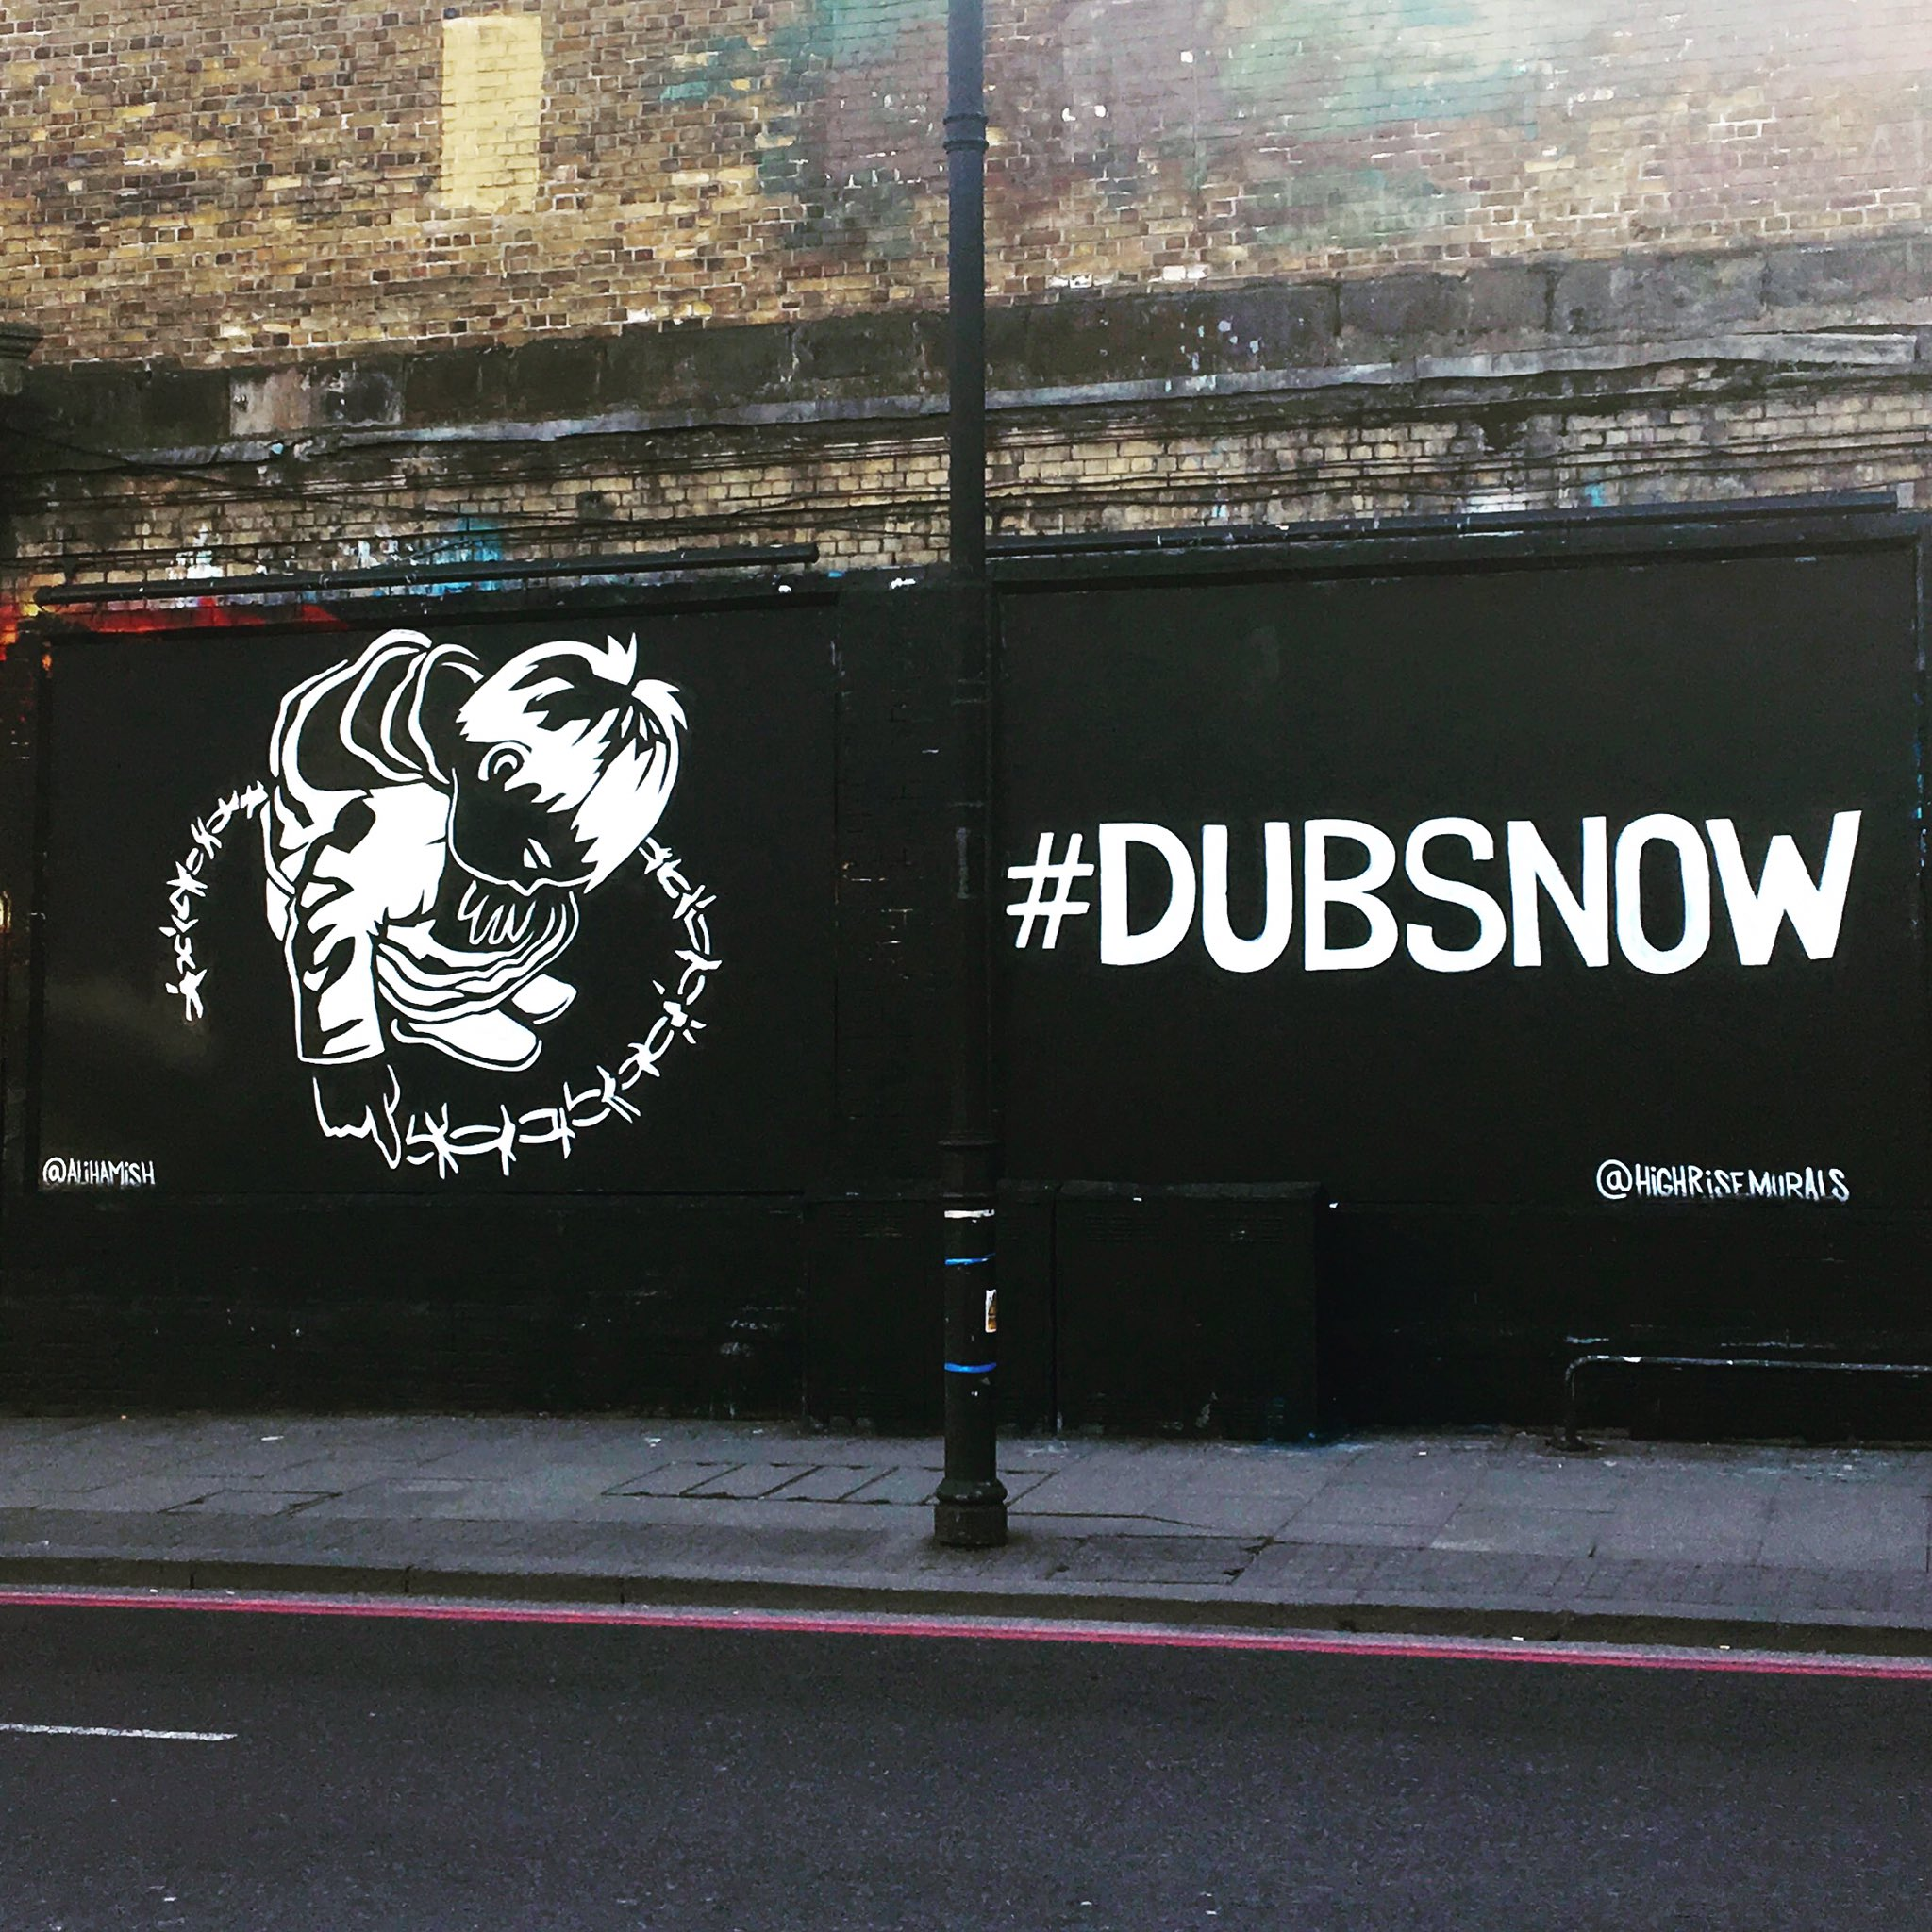 #DUBSNOW at the Shoreditch Art Wall